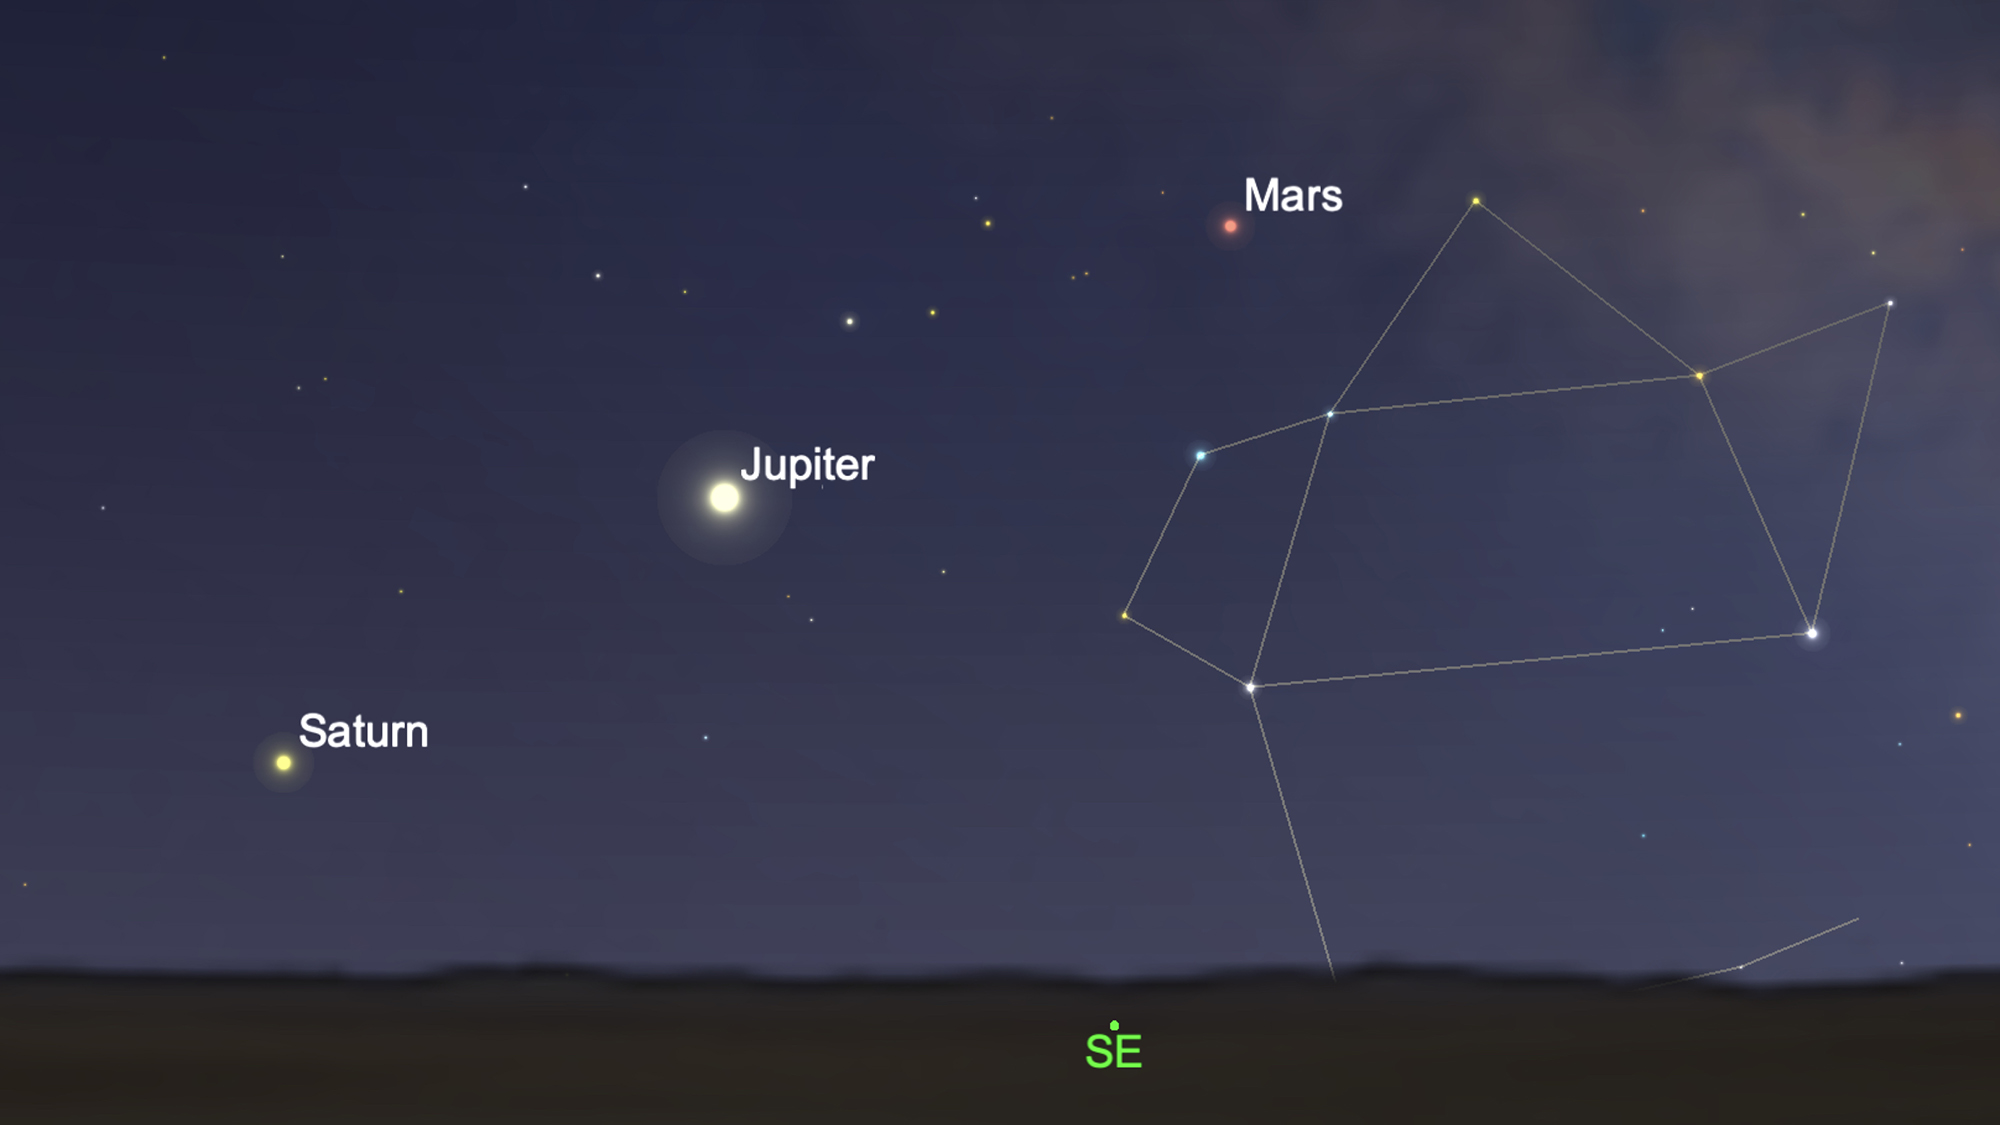 How to see Jupiter without using a telescope at night - Quora